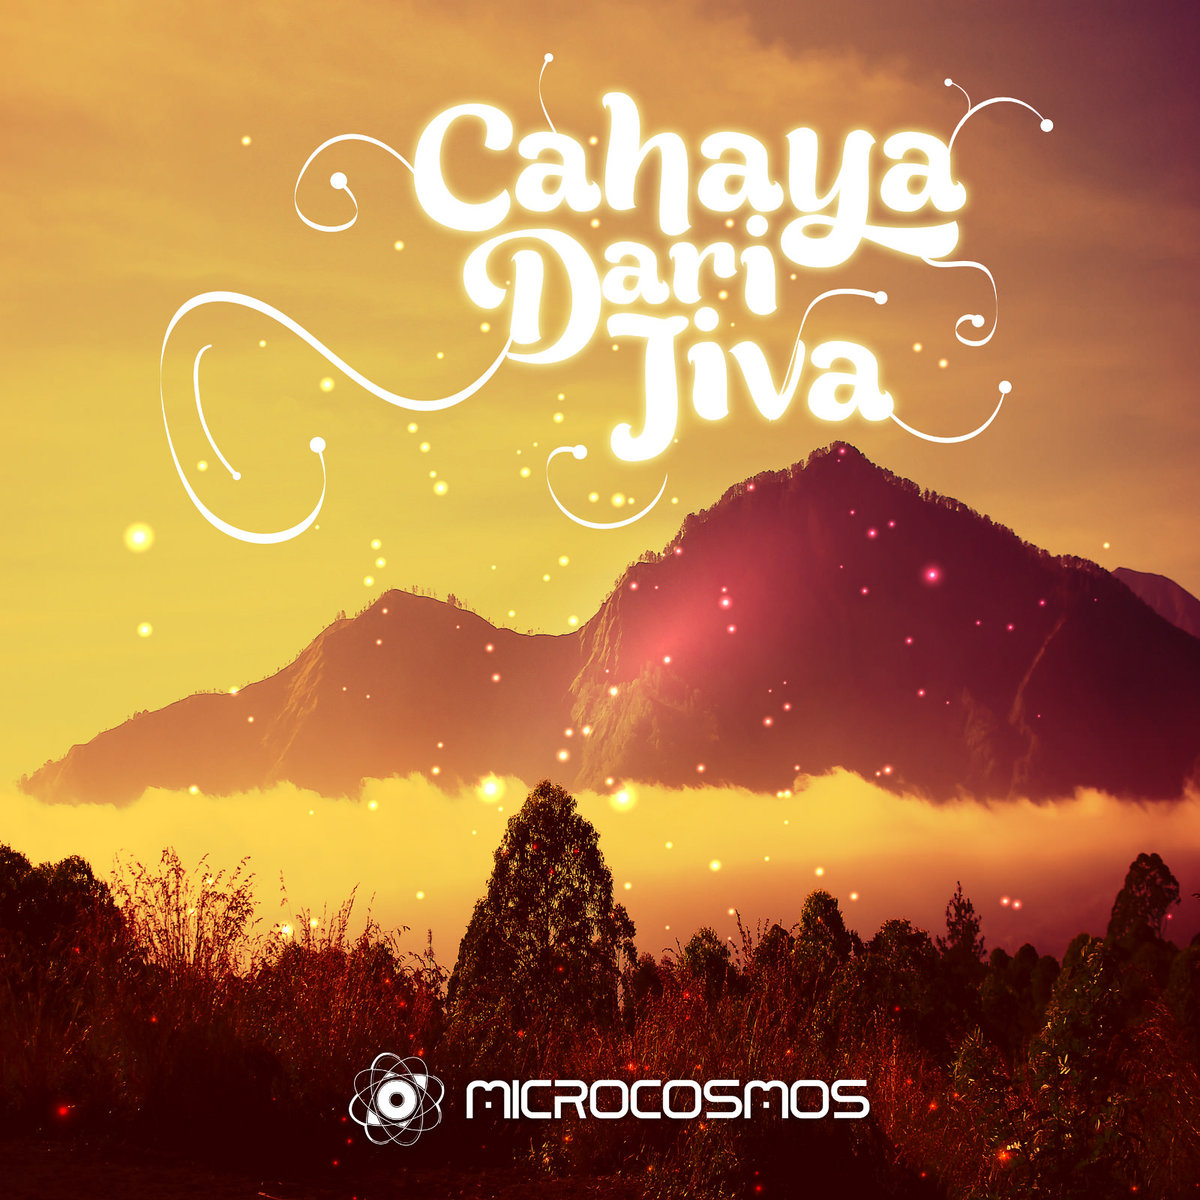 Wavespell - White Wispers Dub @ 'Various Artists - Cahaya Dari Jiva' album (ambient, chill-out)